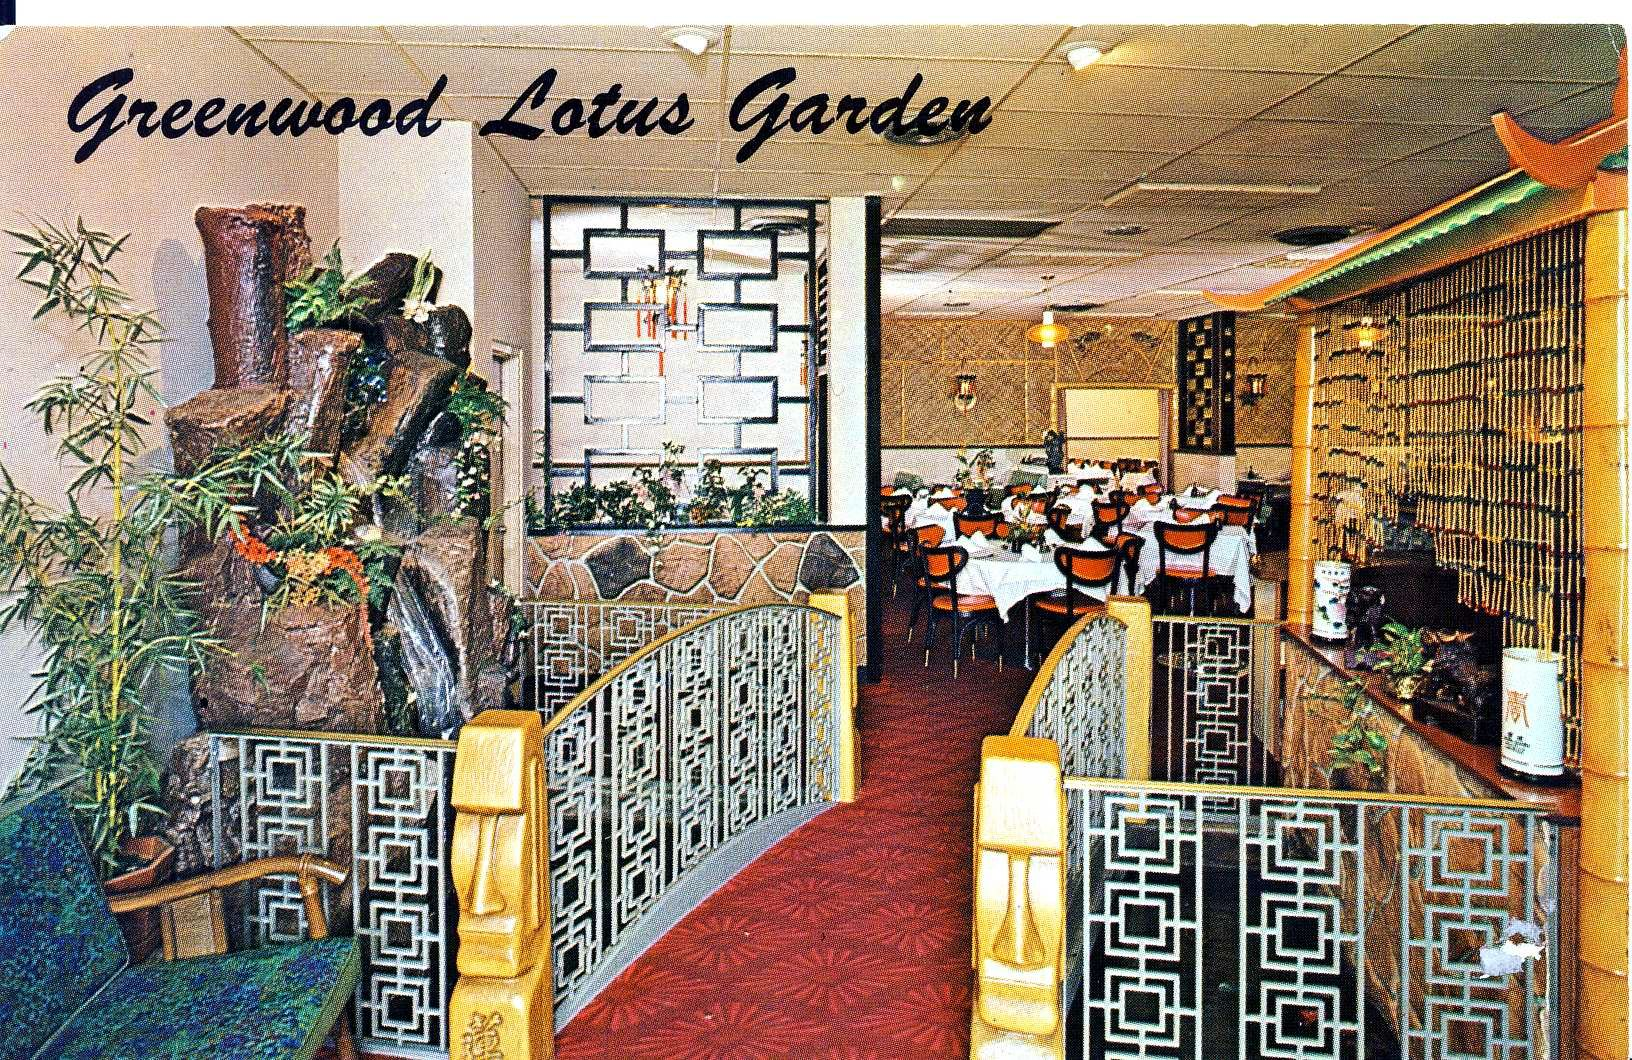 Vintage Postcard From The Lotus Garden Restaurant In Greenwood Indiana The Restaurant Is Still In Business Tiki Room Indoor Water Features Indiana